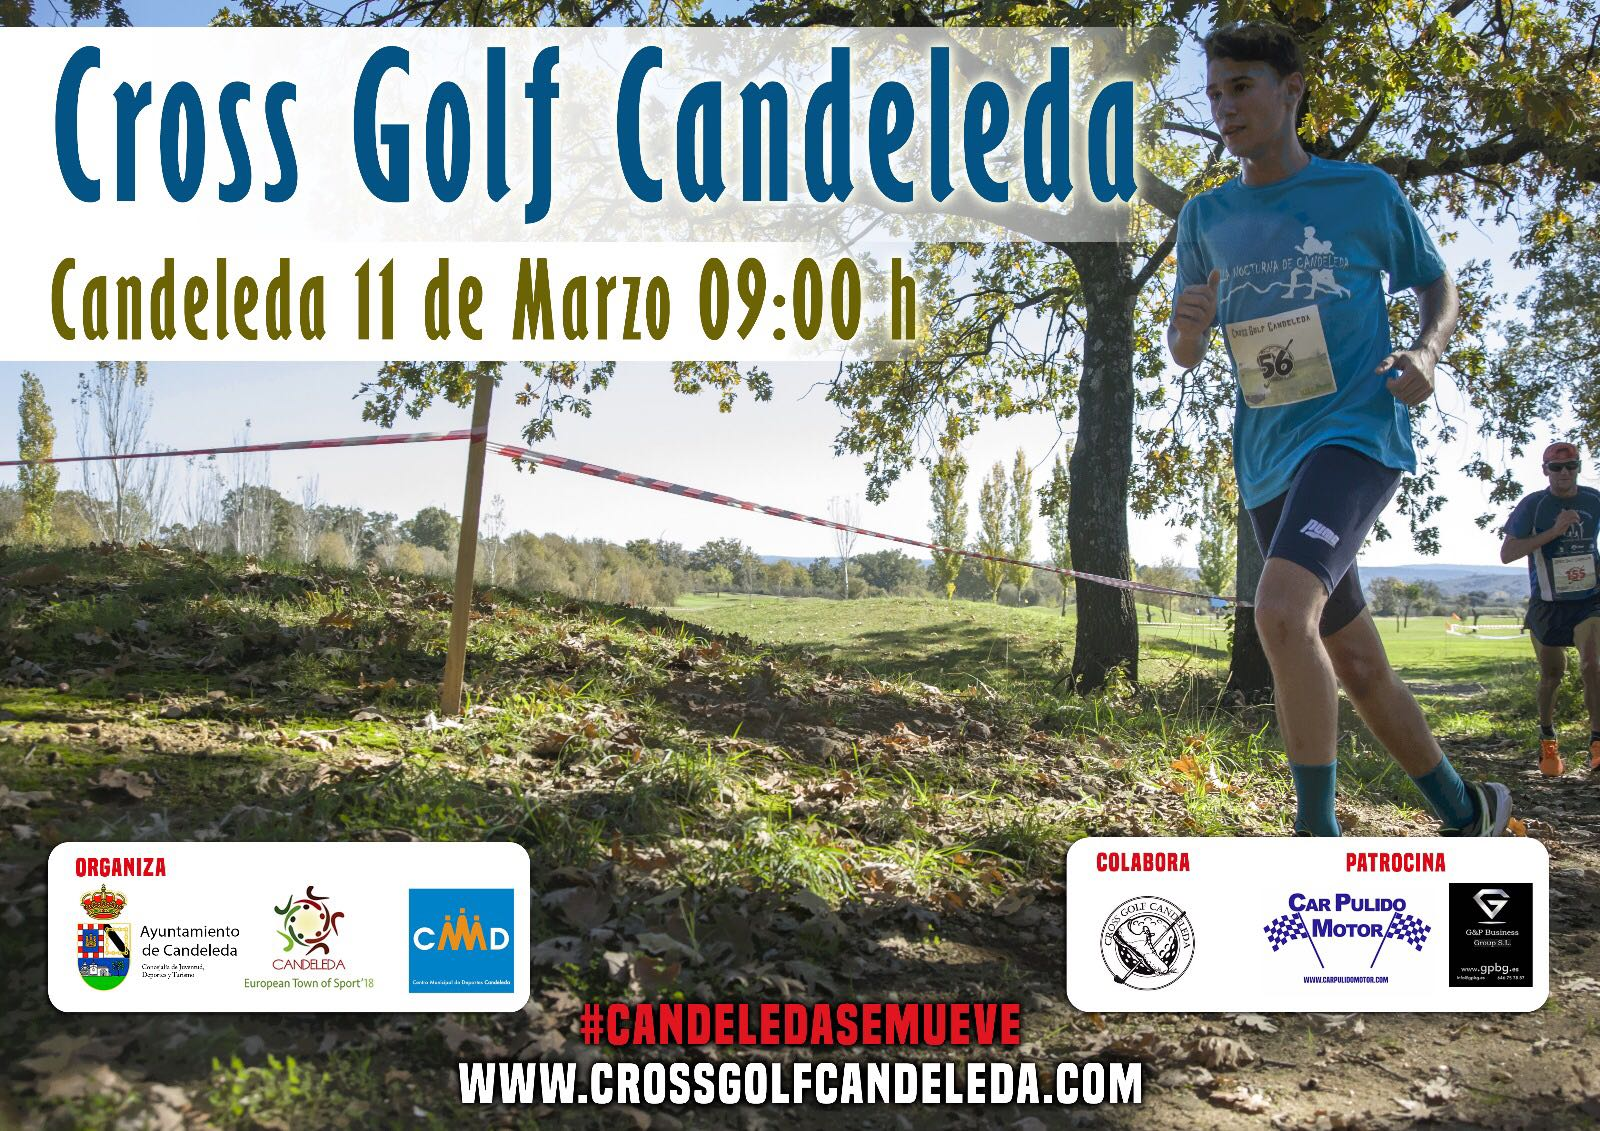 Cross Golf Candeleda - TiétarTeVe